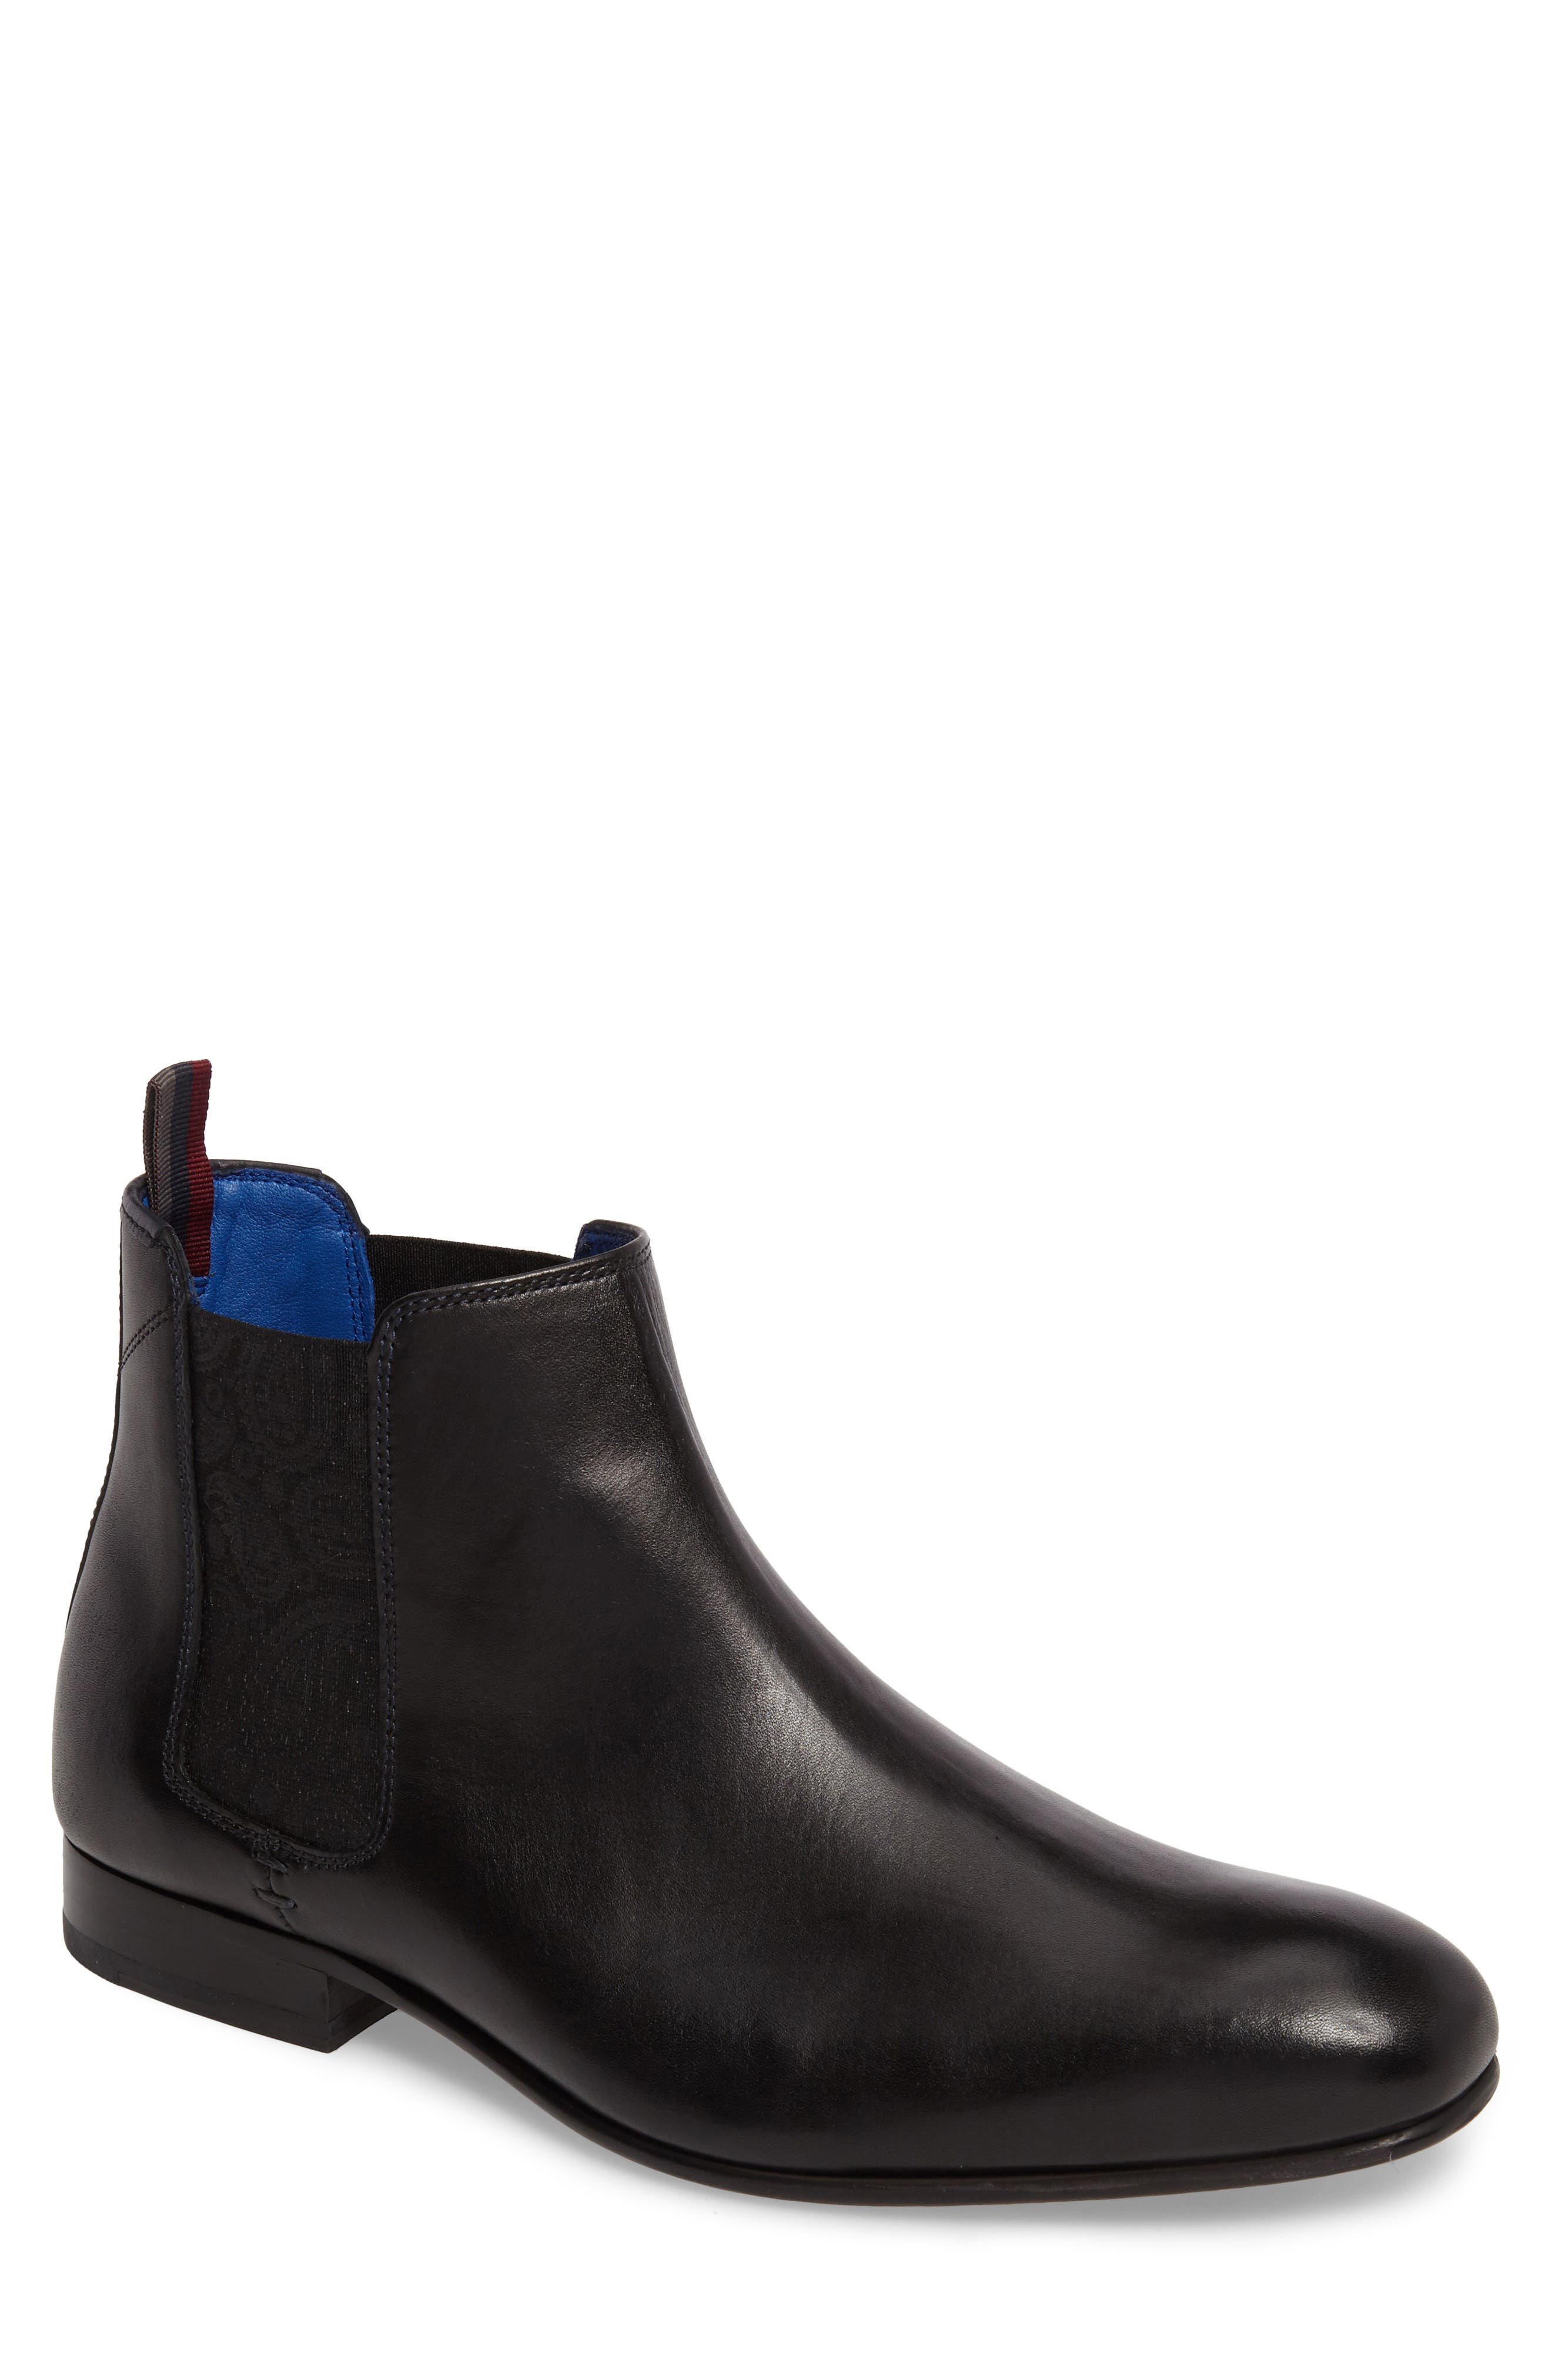 Kayto Chelsea Boot,                         Main,                         color, Black Leather